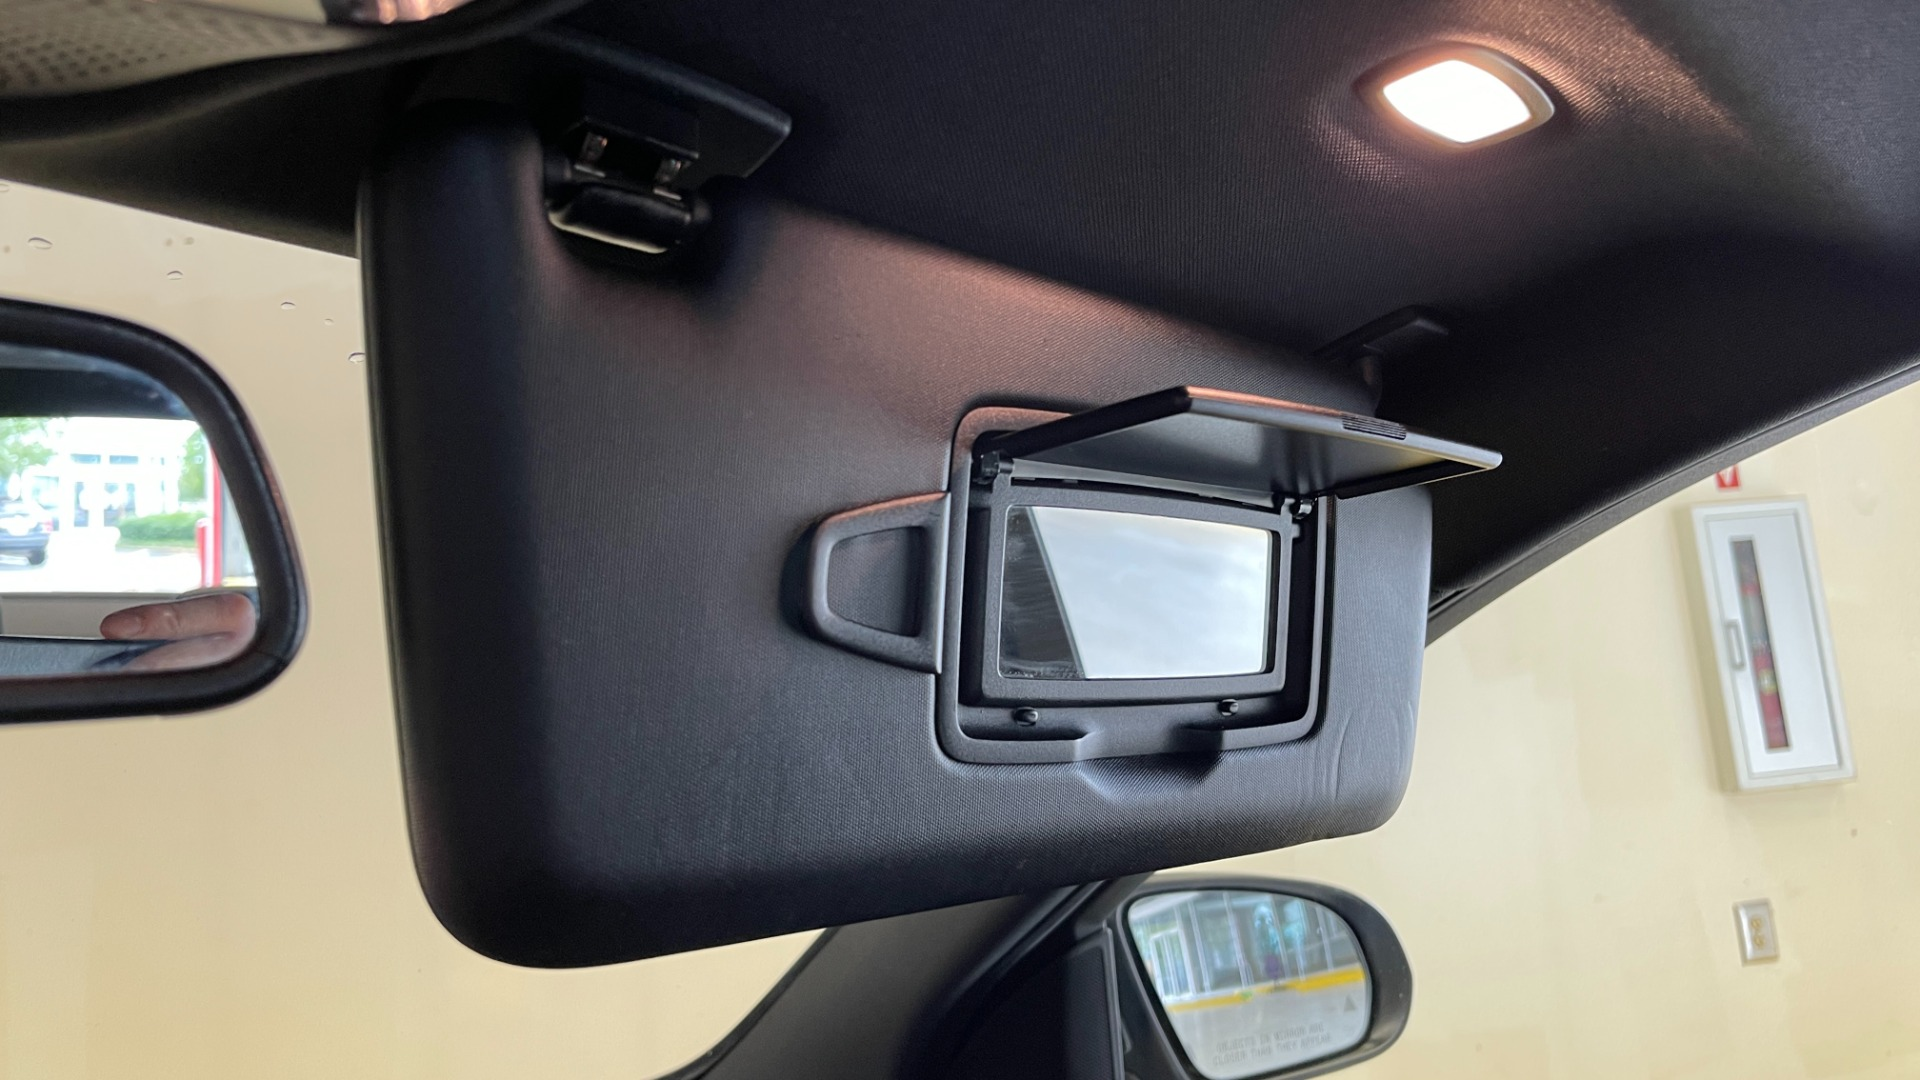 Used 2018 Mercedes-Benz C-CLASS C 300 PREMIUM / SUNROOF / APPLE CARPLAY / HTD STS / REARVIEW for sale $31,795 at Formula Imports in Charlotte NC 28227 35